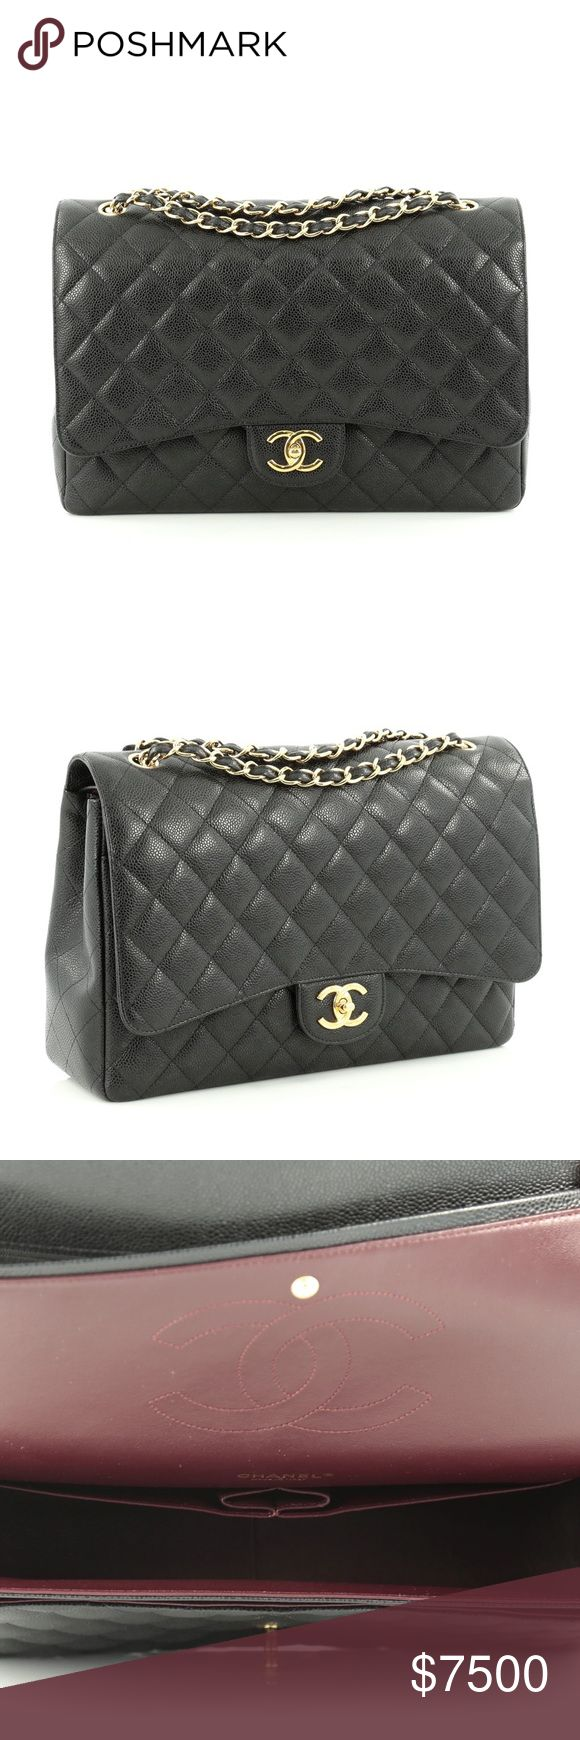 CHANEL Double Flap Maxi Black The coveted Chanel Double Flap, Quilted Caviar Maxi! RARE!! This is the most gorgeous bag I own and not 100% certain I want to sell. There are NO TRADES (please don't ask - I will not respond).  Serious buyers only. CHANEL Bags